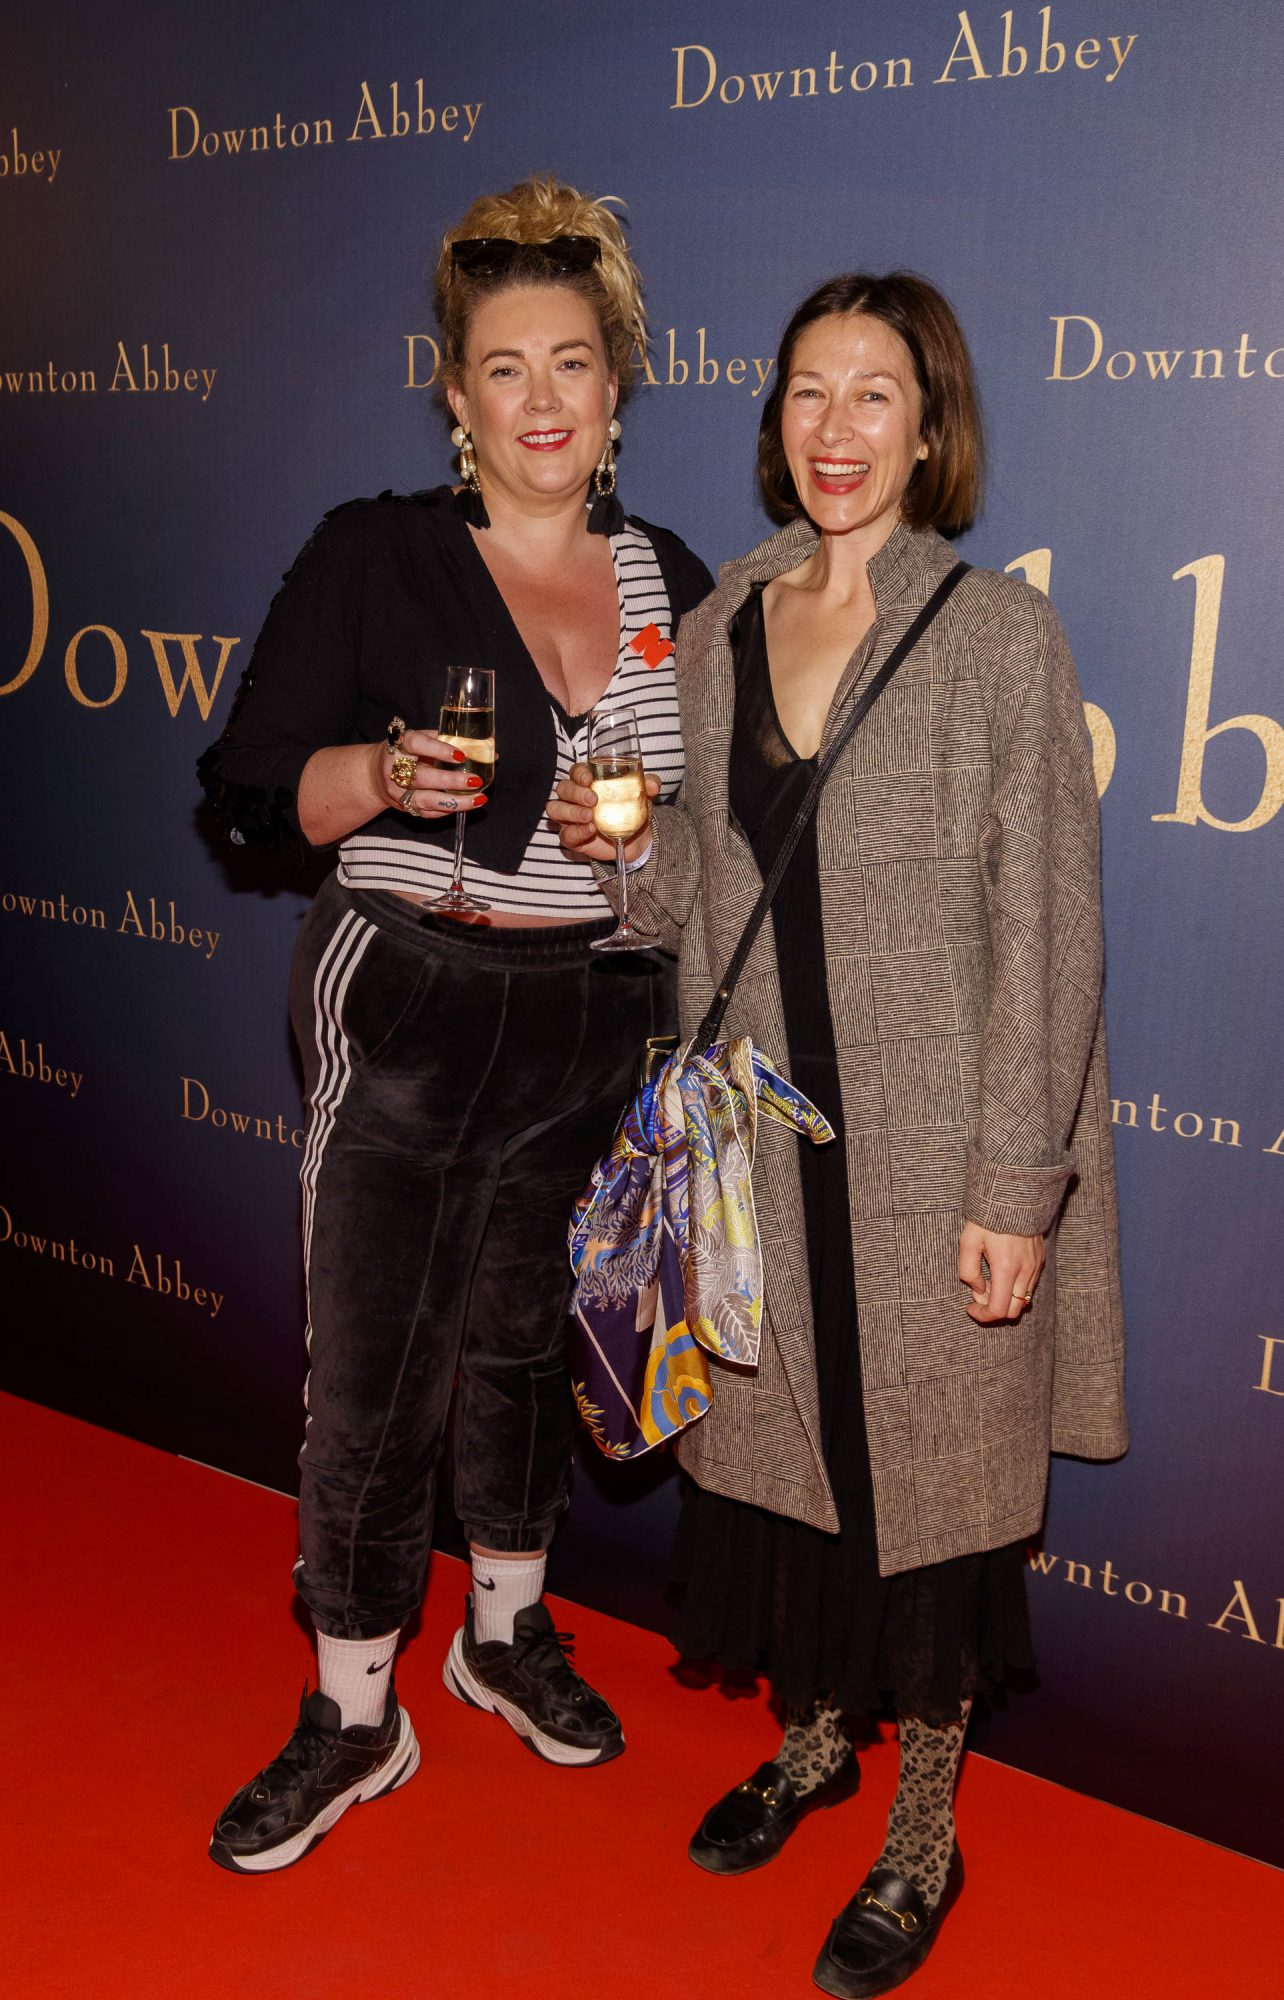 Andrea Horan and Natalie B Coleman pictured at the Universal Pictures Irish premiere screening of DOWNTON ABBEY at The Stella Theatre, Rathmines. Releasing in cinemas across Ireland from this Friday September 13th, starring the original cast, the worldwide phenomenon DOWNTON ABBEY, becomes a grand motion picture event. Picture Andres Poveda